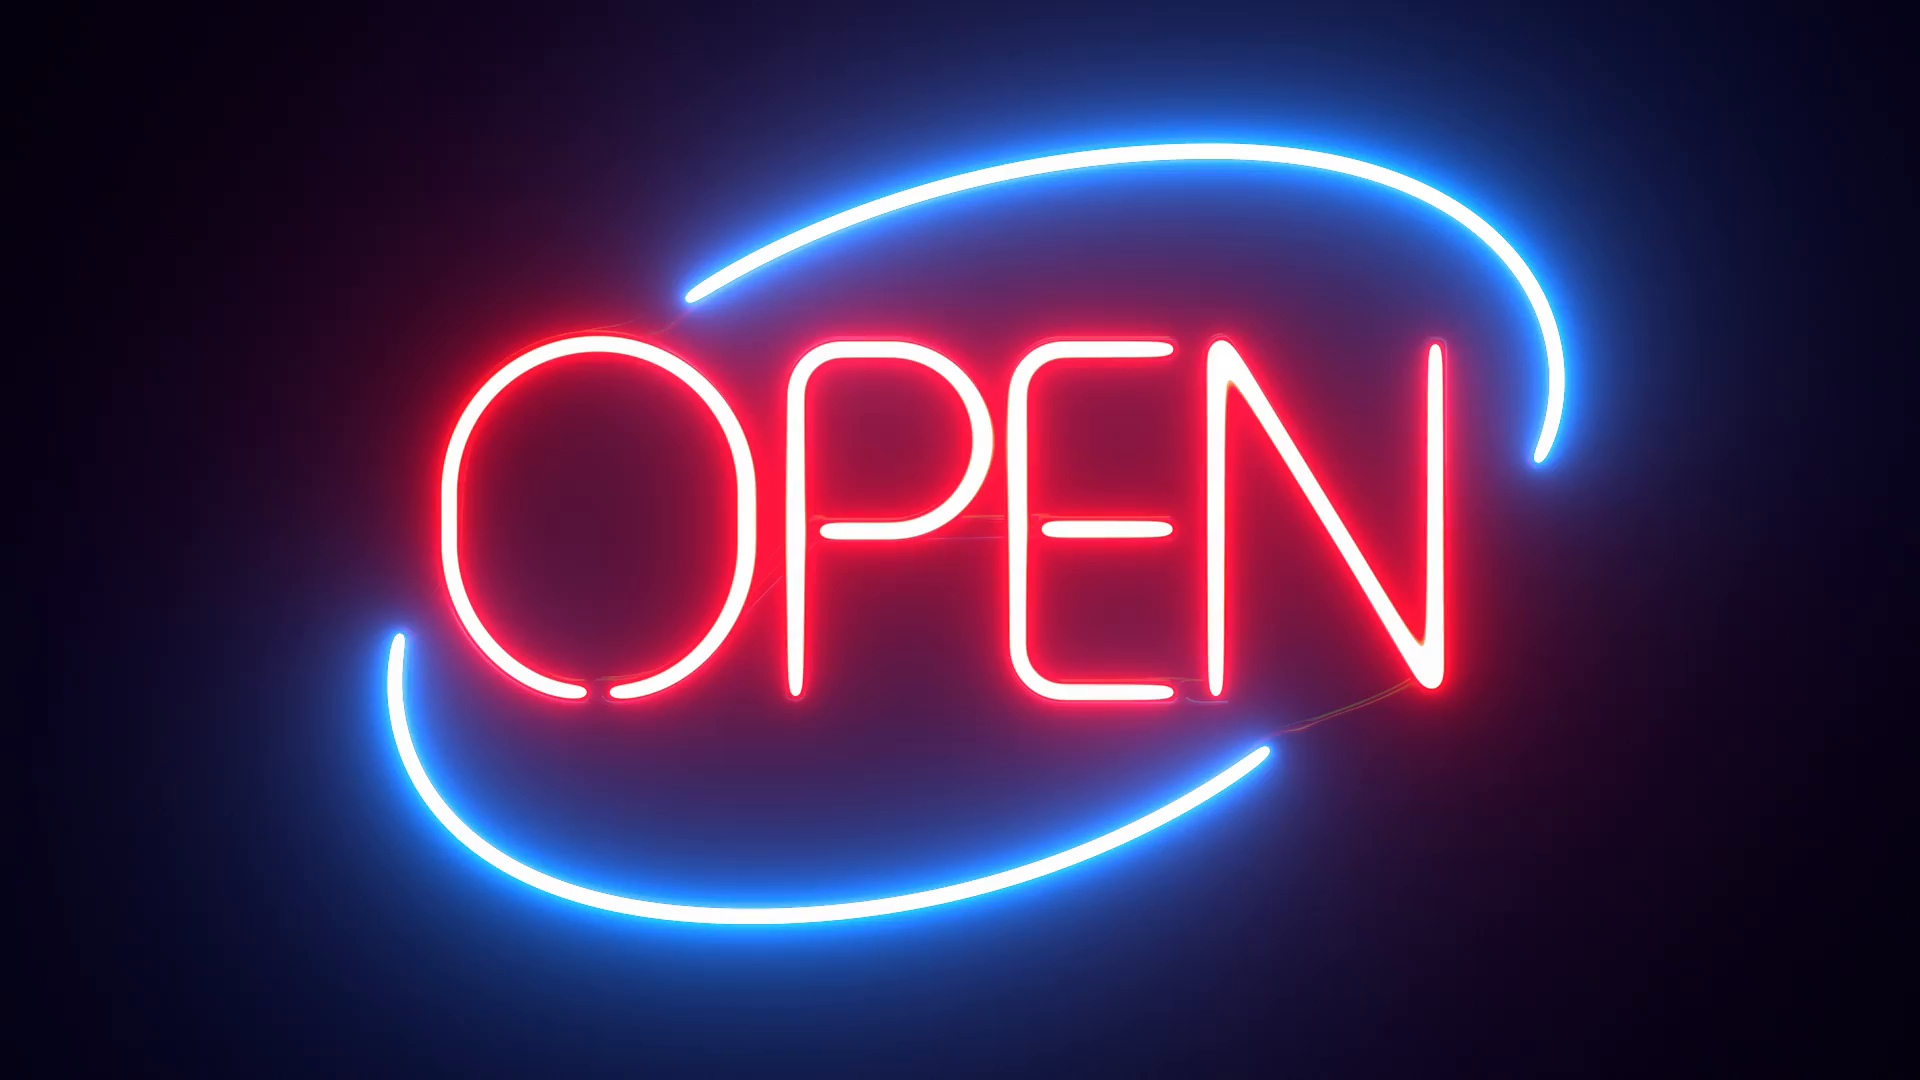 open neon sign desktop wallpaper 66629